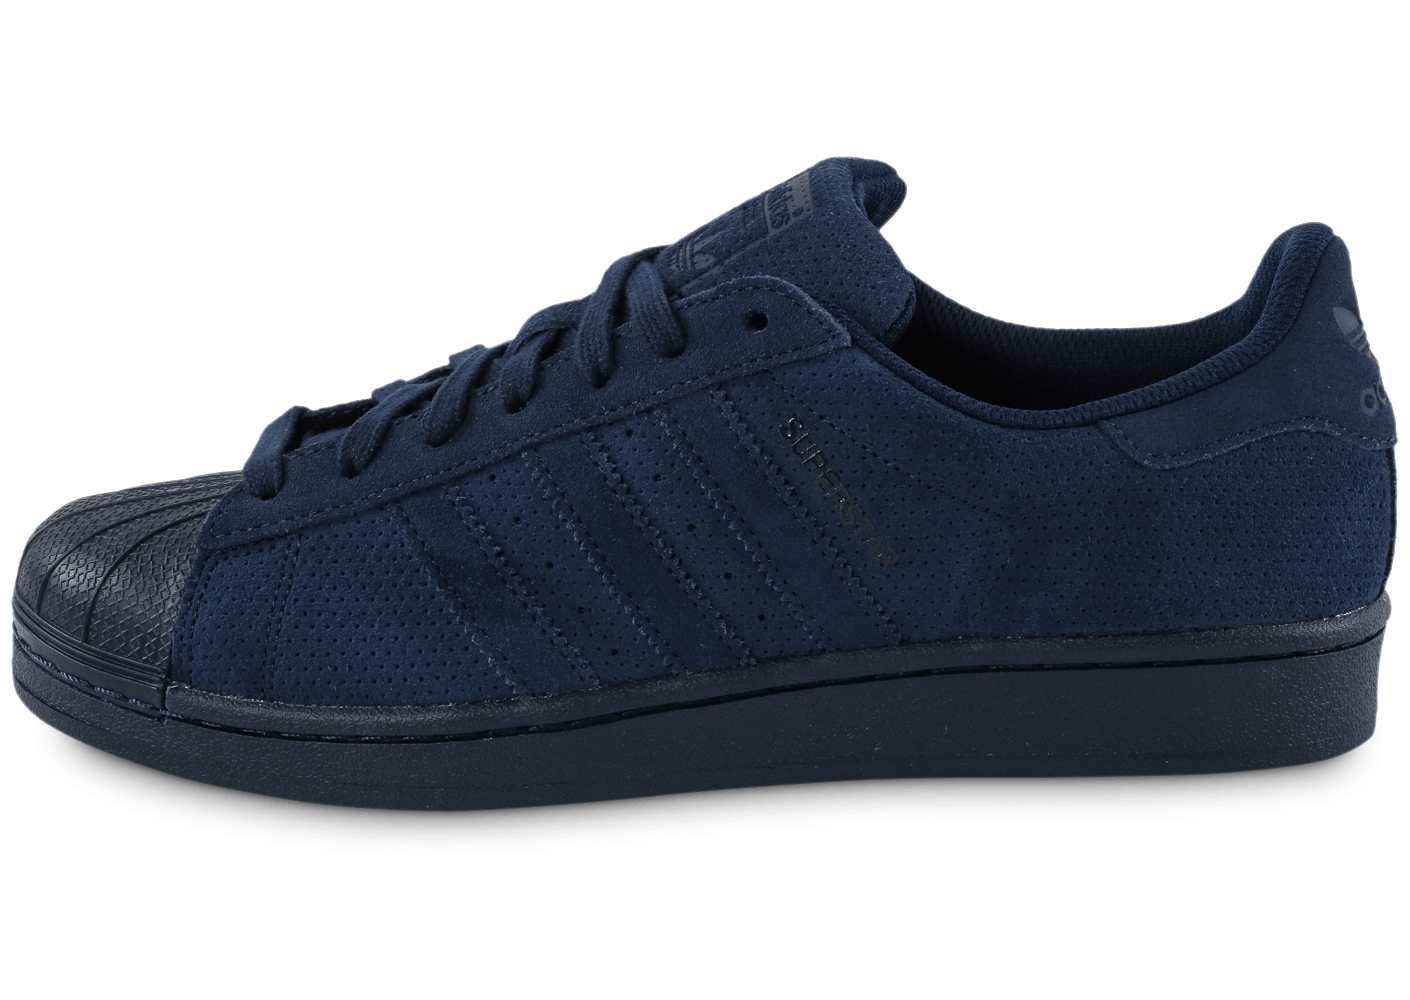 adidas superstar bleu daim. Black Bedroom Furniture Sets. Home Design Ideas